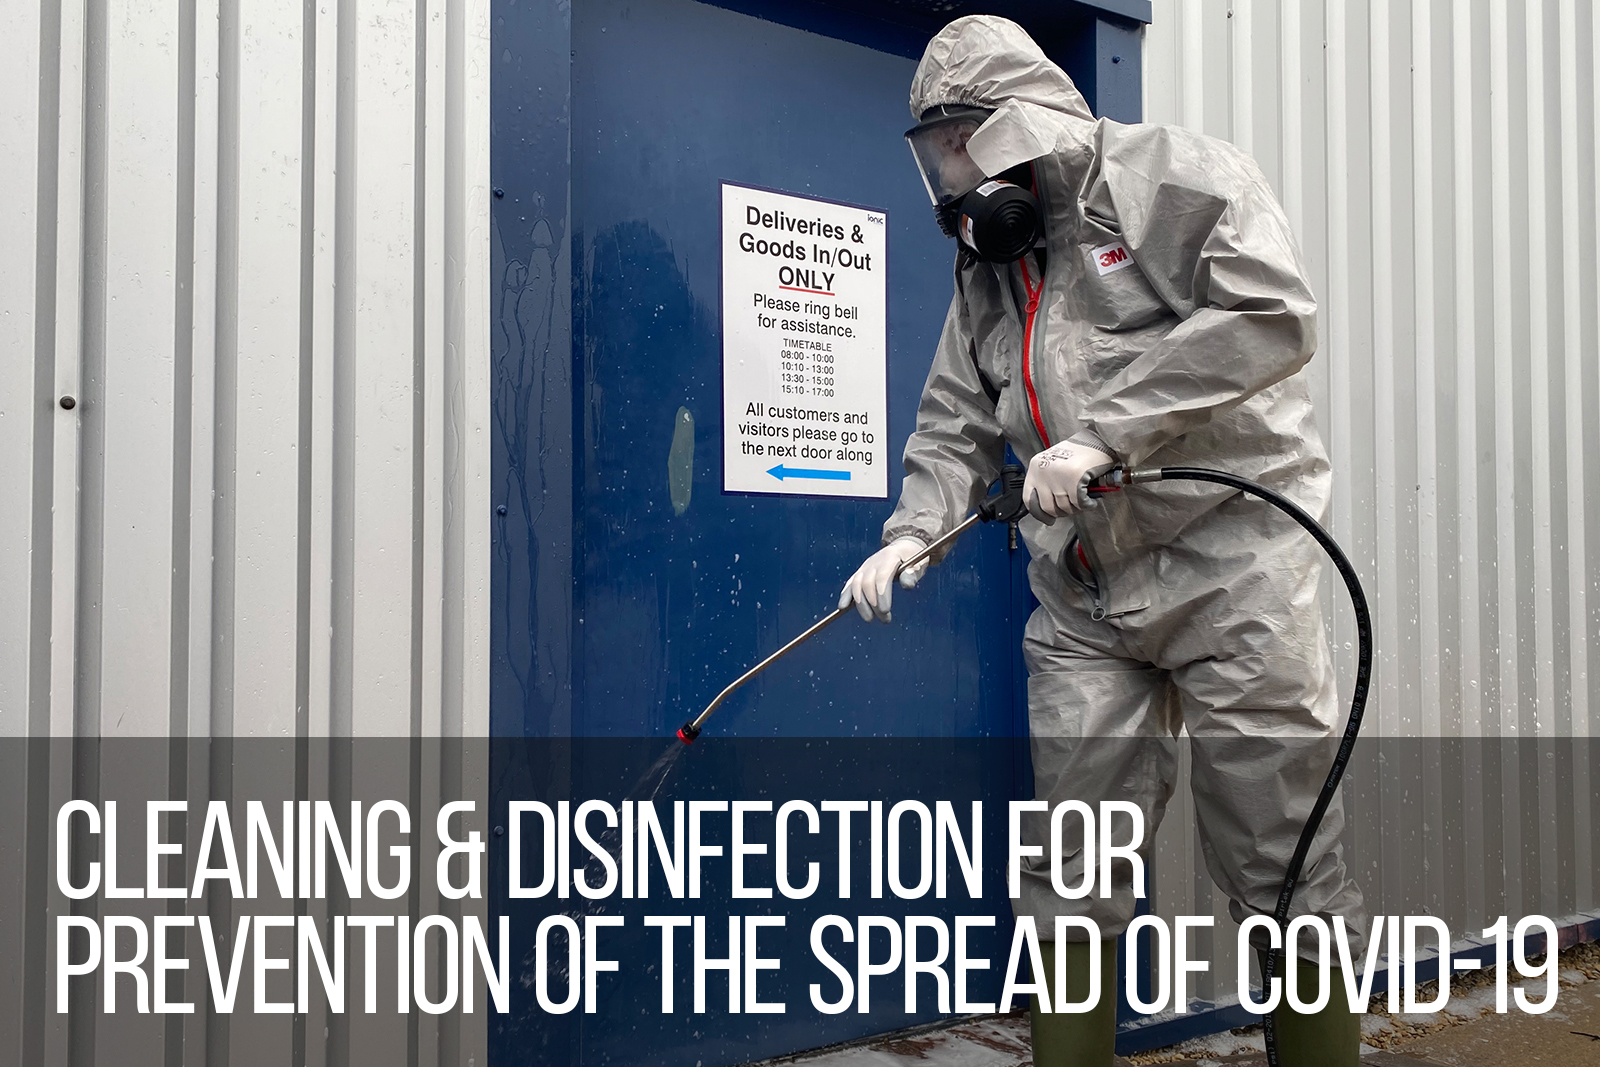 cleaning-disinfection-for-prevention-of-covid-19